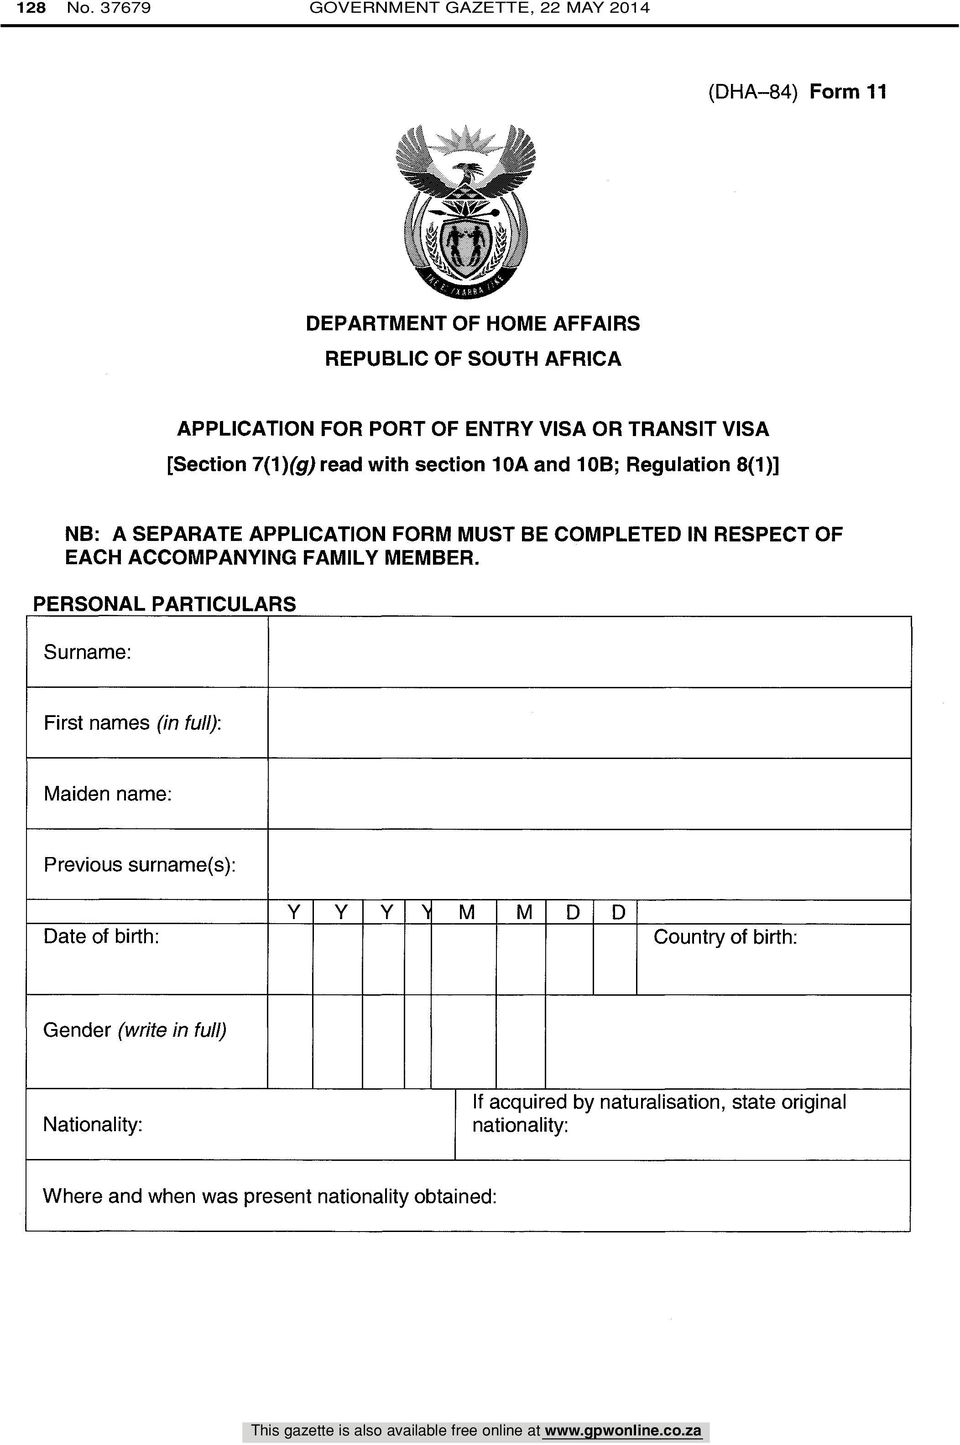 TRANSIT VISA [Section 7(1)(g) read with section 10A and 10B; Regulation 8(1)] NB: A SEPARATE APPLICATION FORM MUST BE COMPLETED IN RESPECT OF EACH